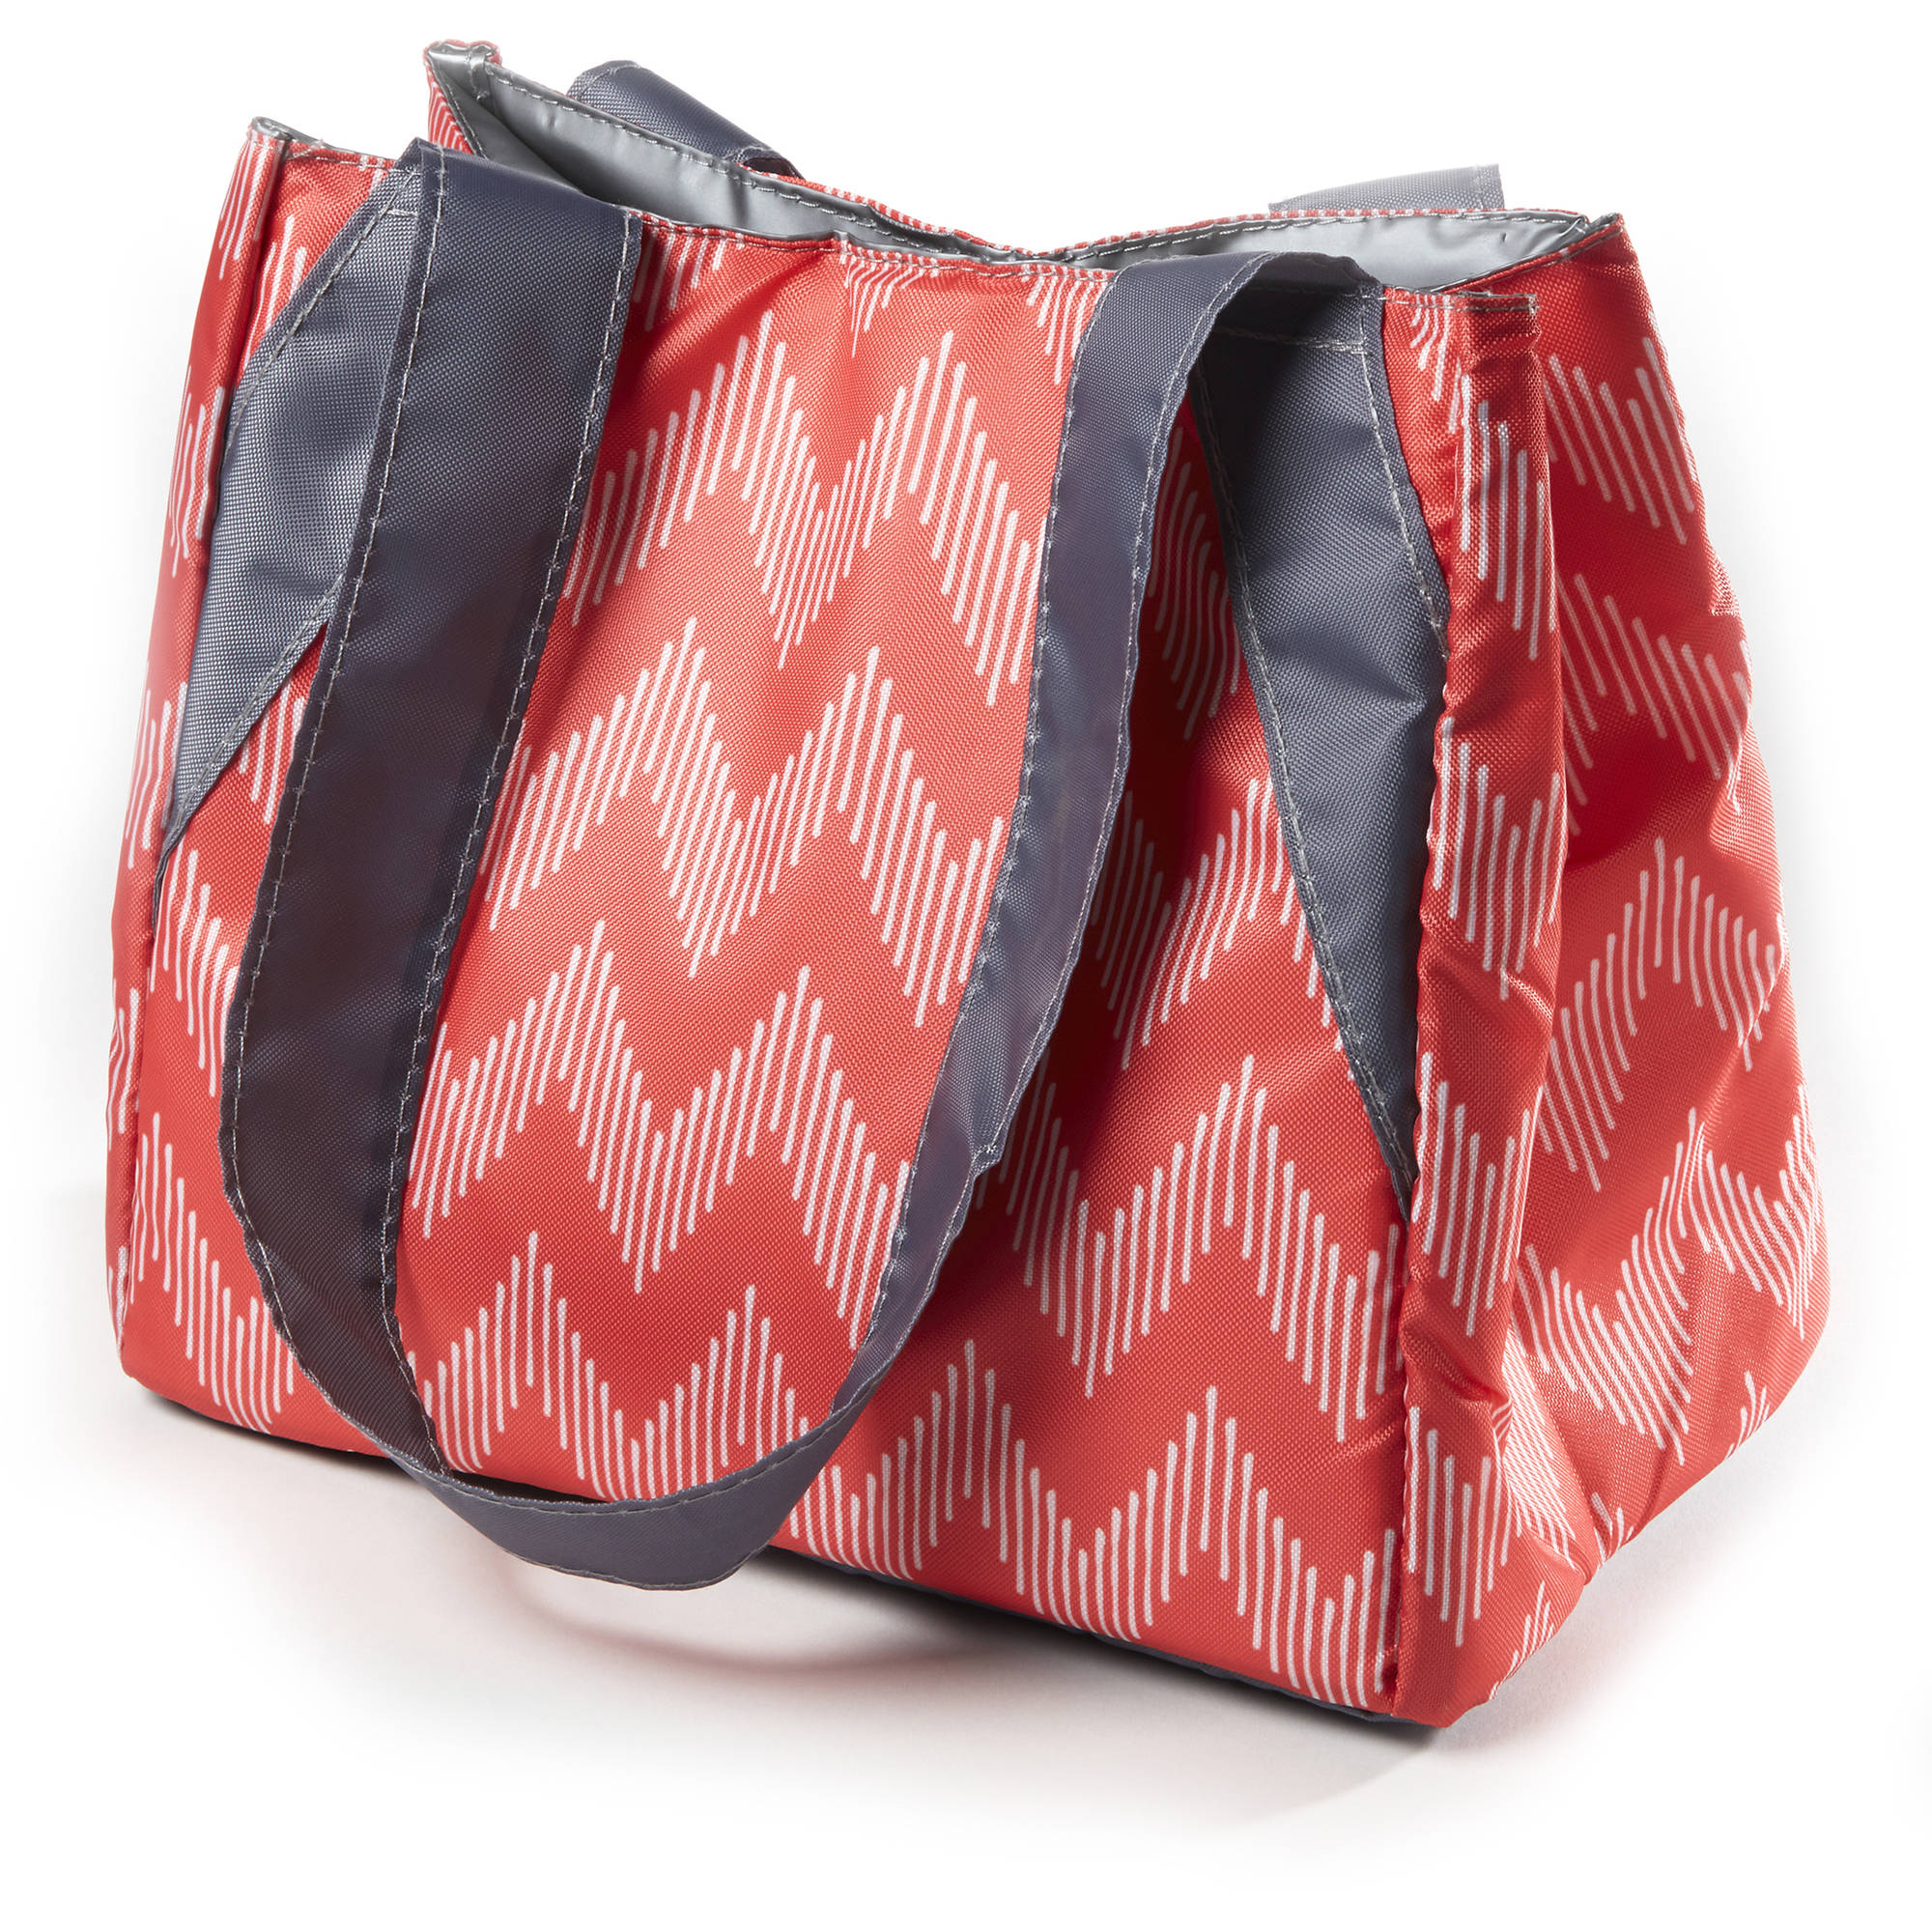 Lunch On The Go Open Top Insulated Lunch Bag, Multiple Colors